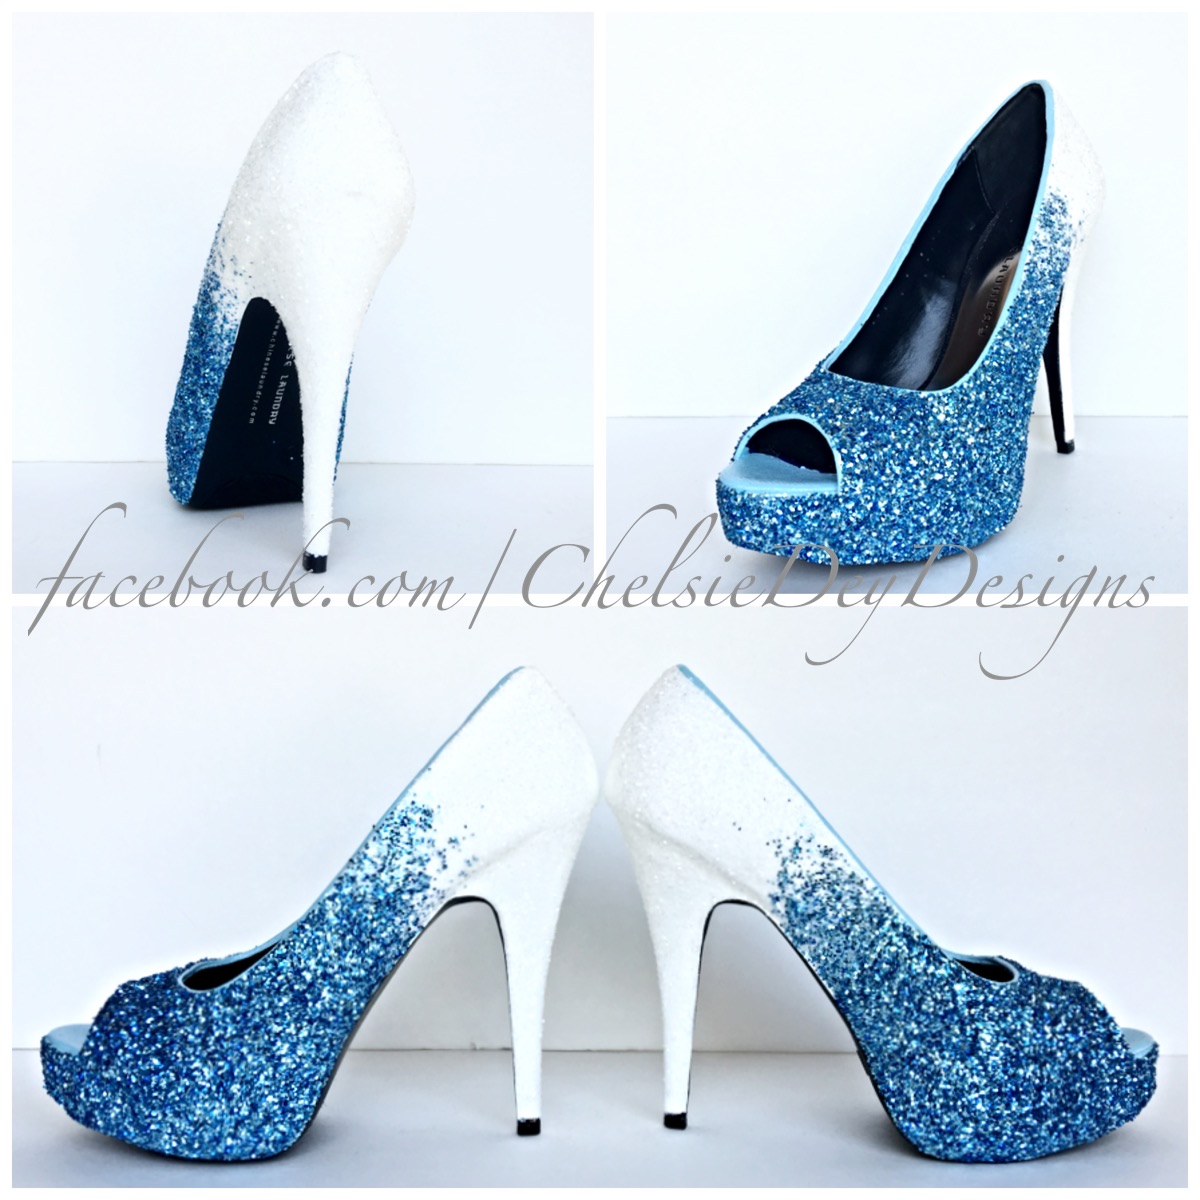 Glitter High Heels   Ocean Blue White Ombre   Peep Toe Pumps   Blue Wedding  Shoes